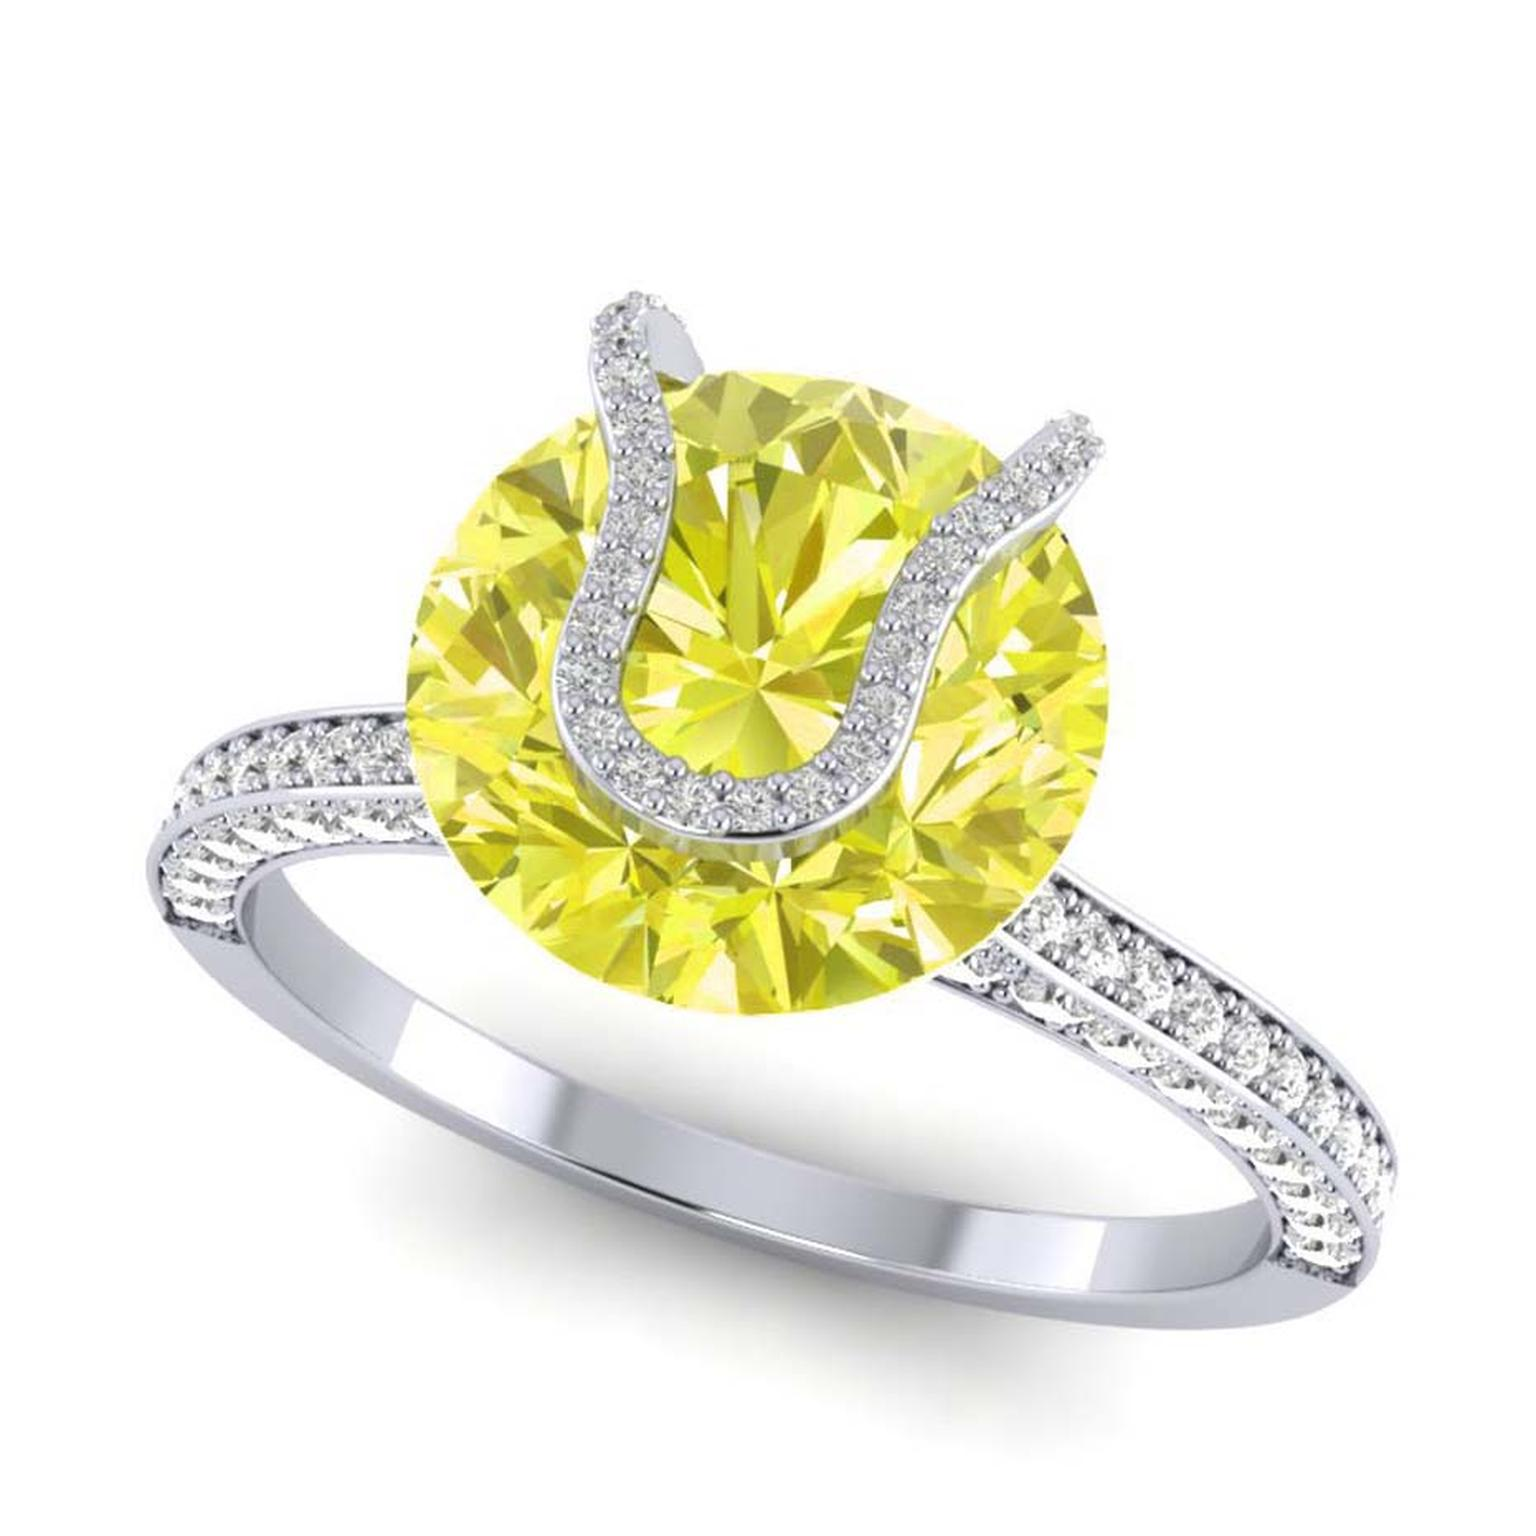 Rare Pink's engagement ring features a rare 2.00ct fancy yellow diamond.